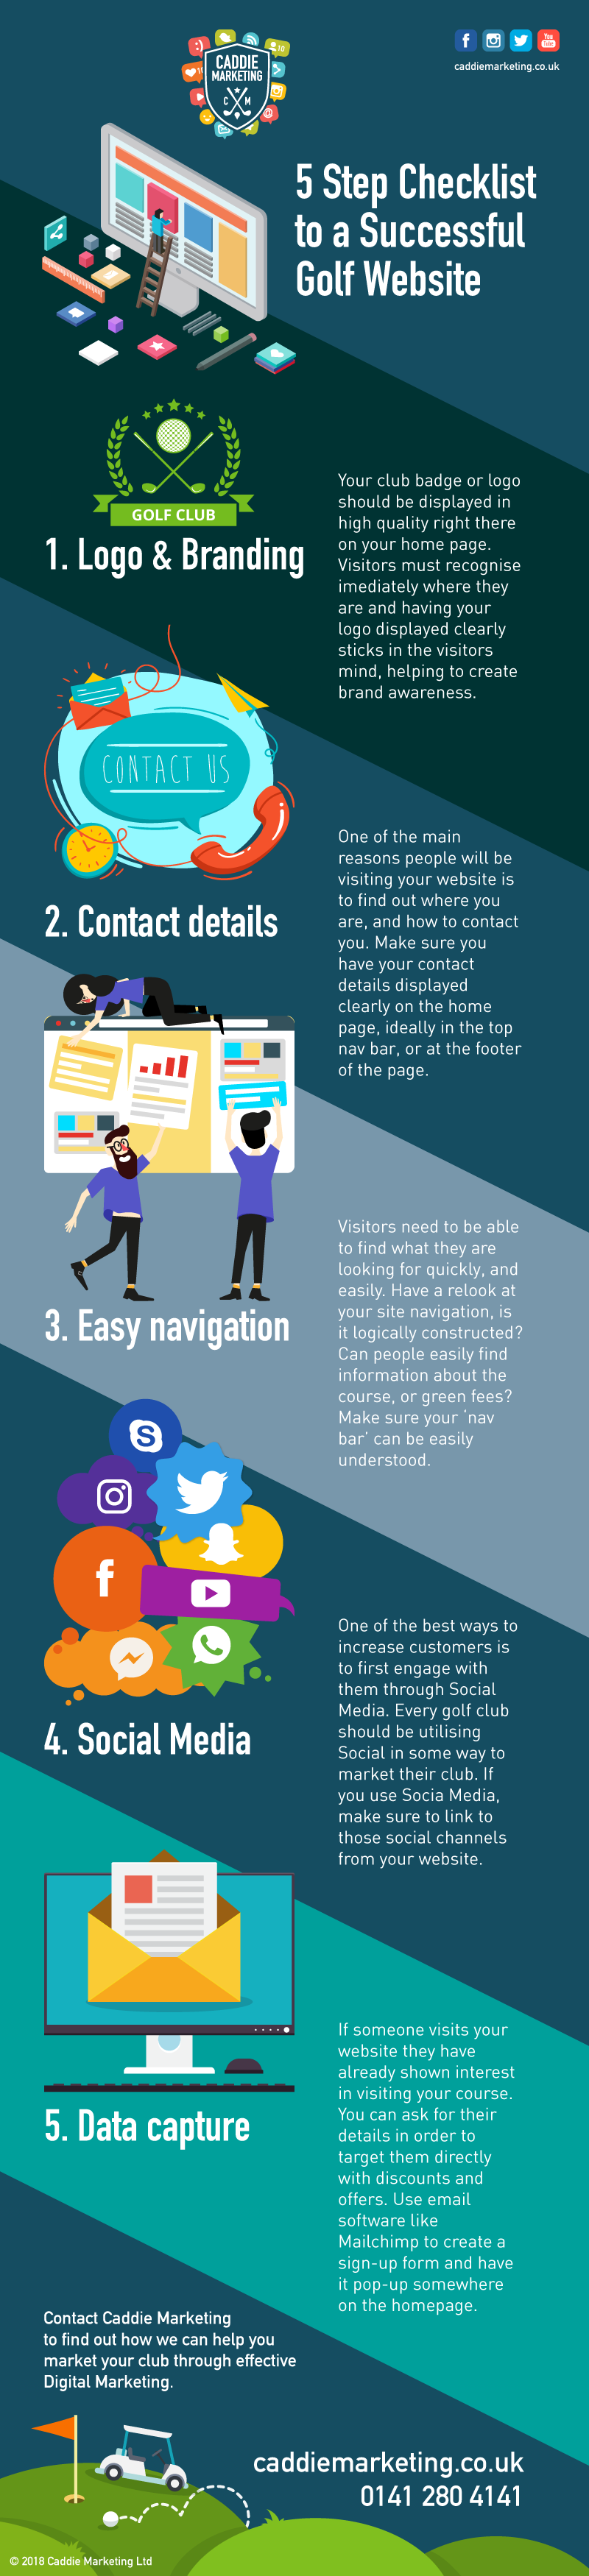 Website tips infographic